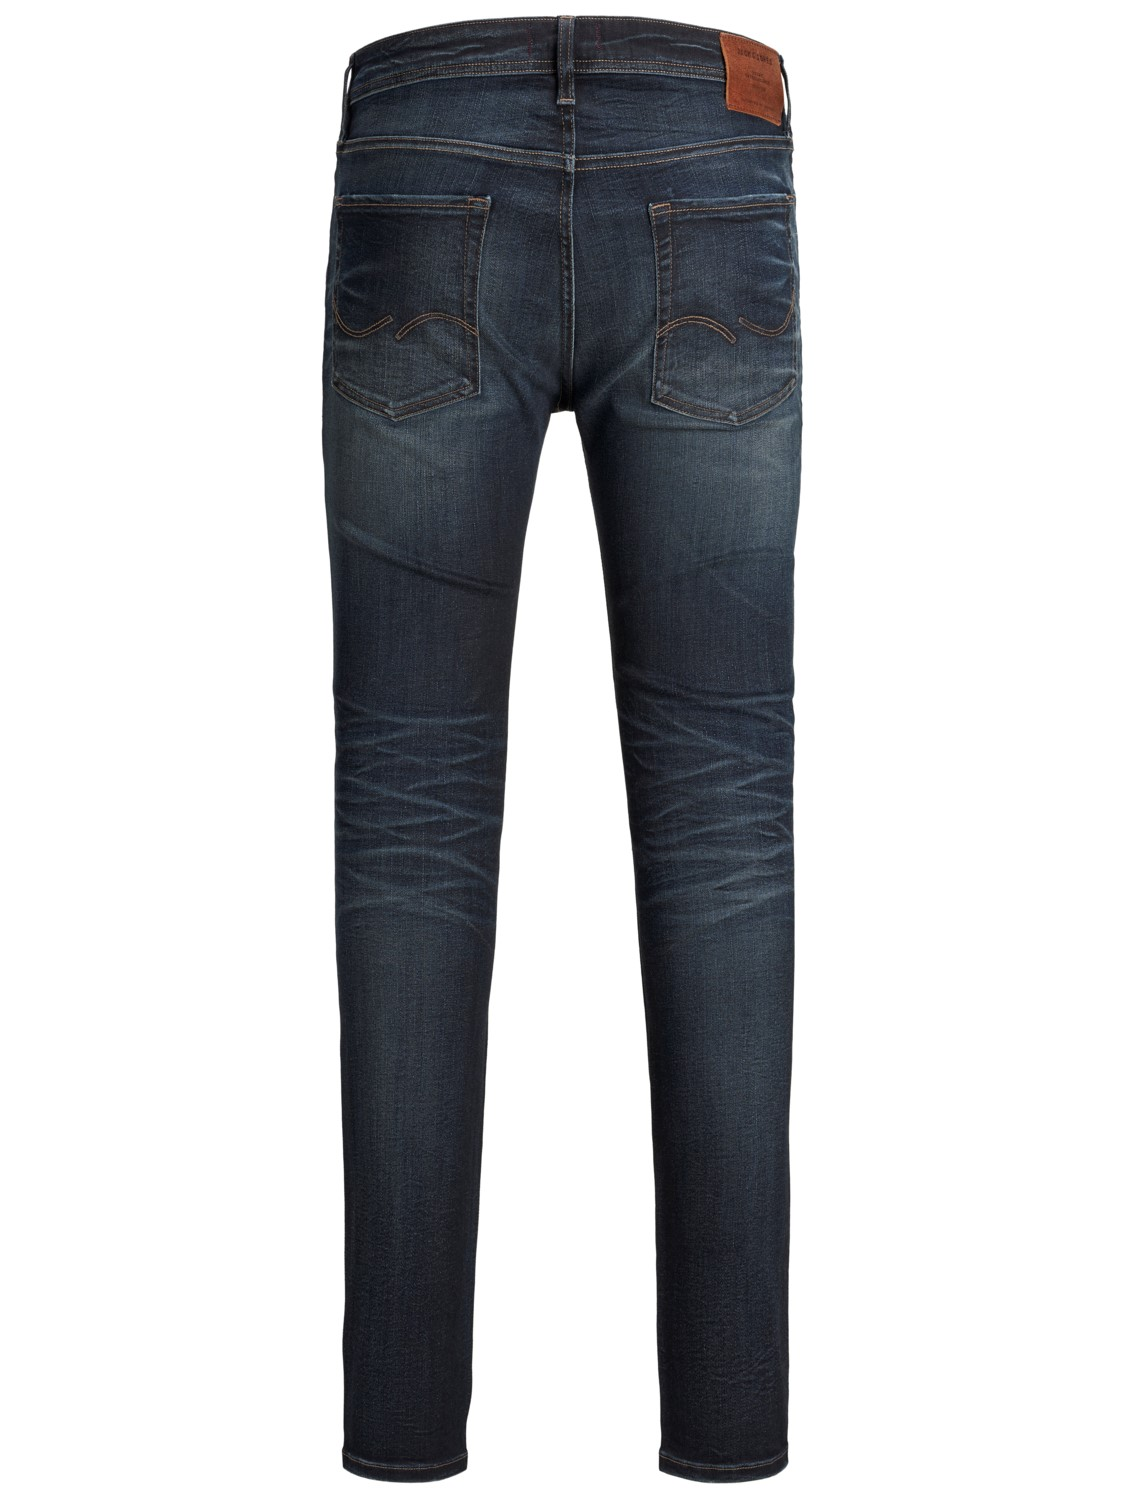 jack-jones-herren-jeans-jjiliam-jjoriginal-jos-650-50sps-skinny-fit-blau-blue-denim